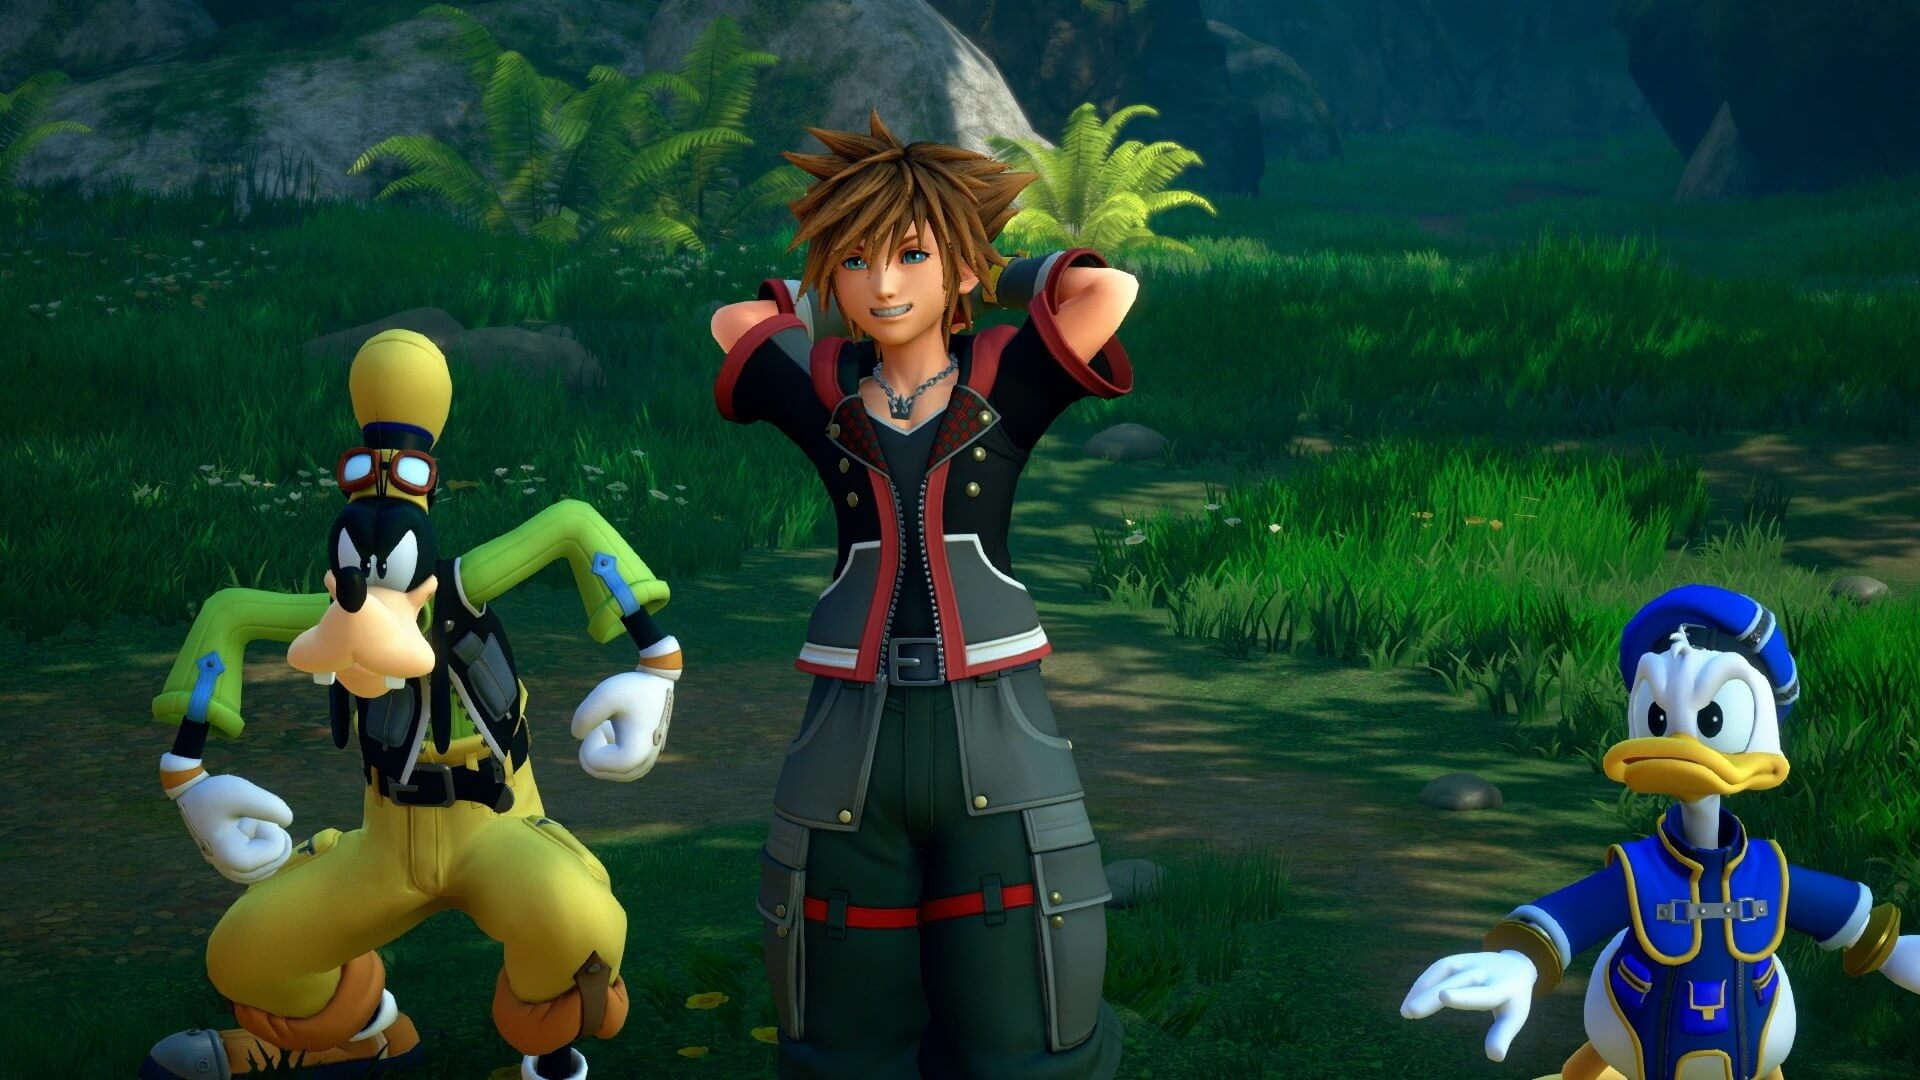 Kingdom Hearts III fans brace themselves for spoilers as game leaks early